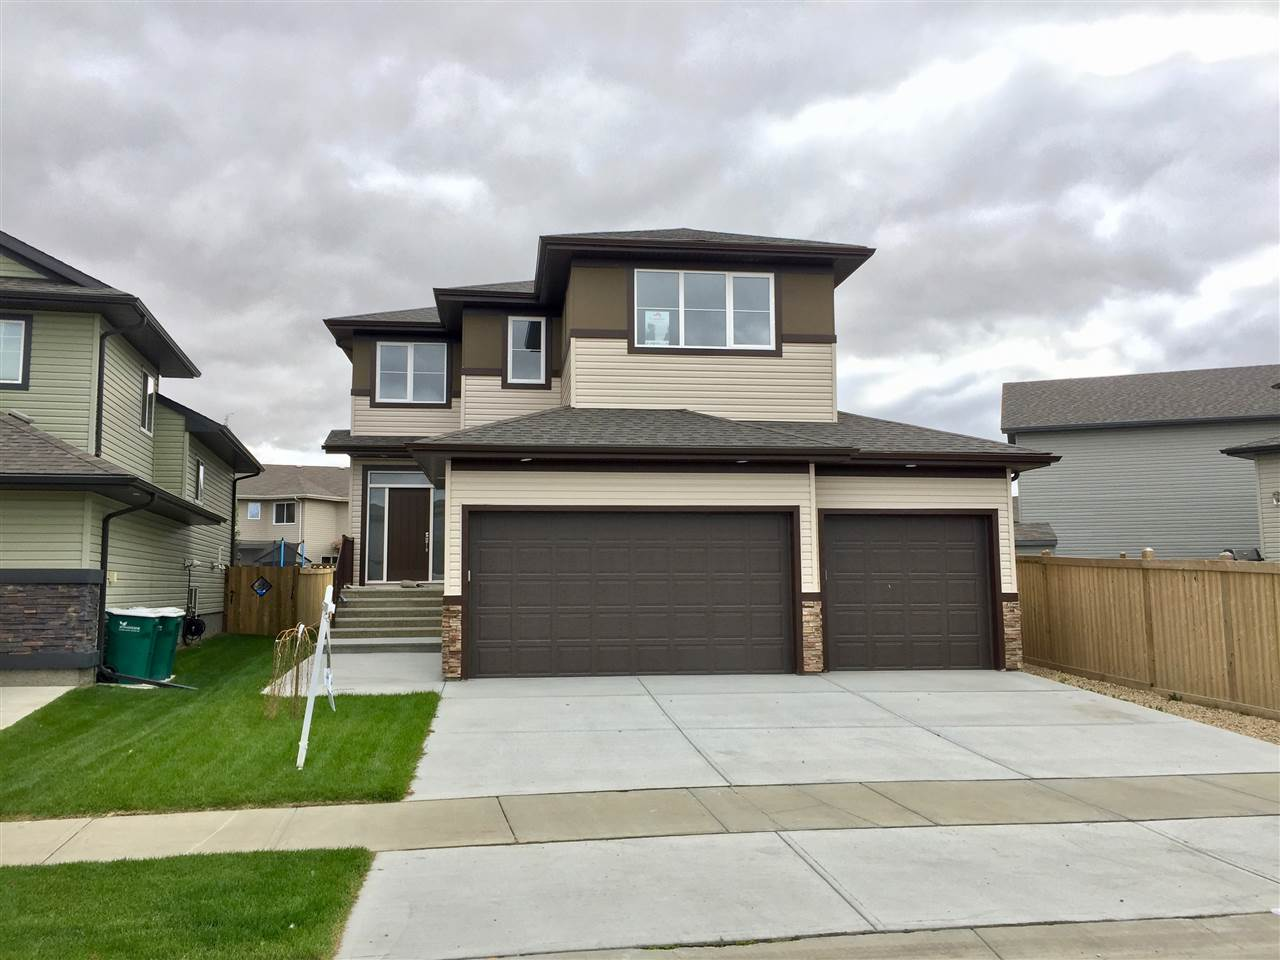 Main Photo: 10307 97 Street: Morinville House for sale : MLS(r) # E4057778